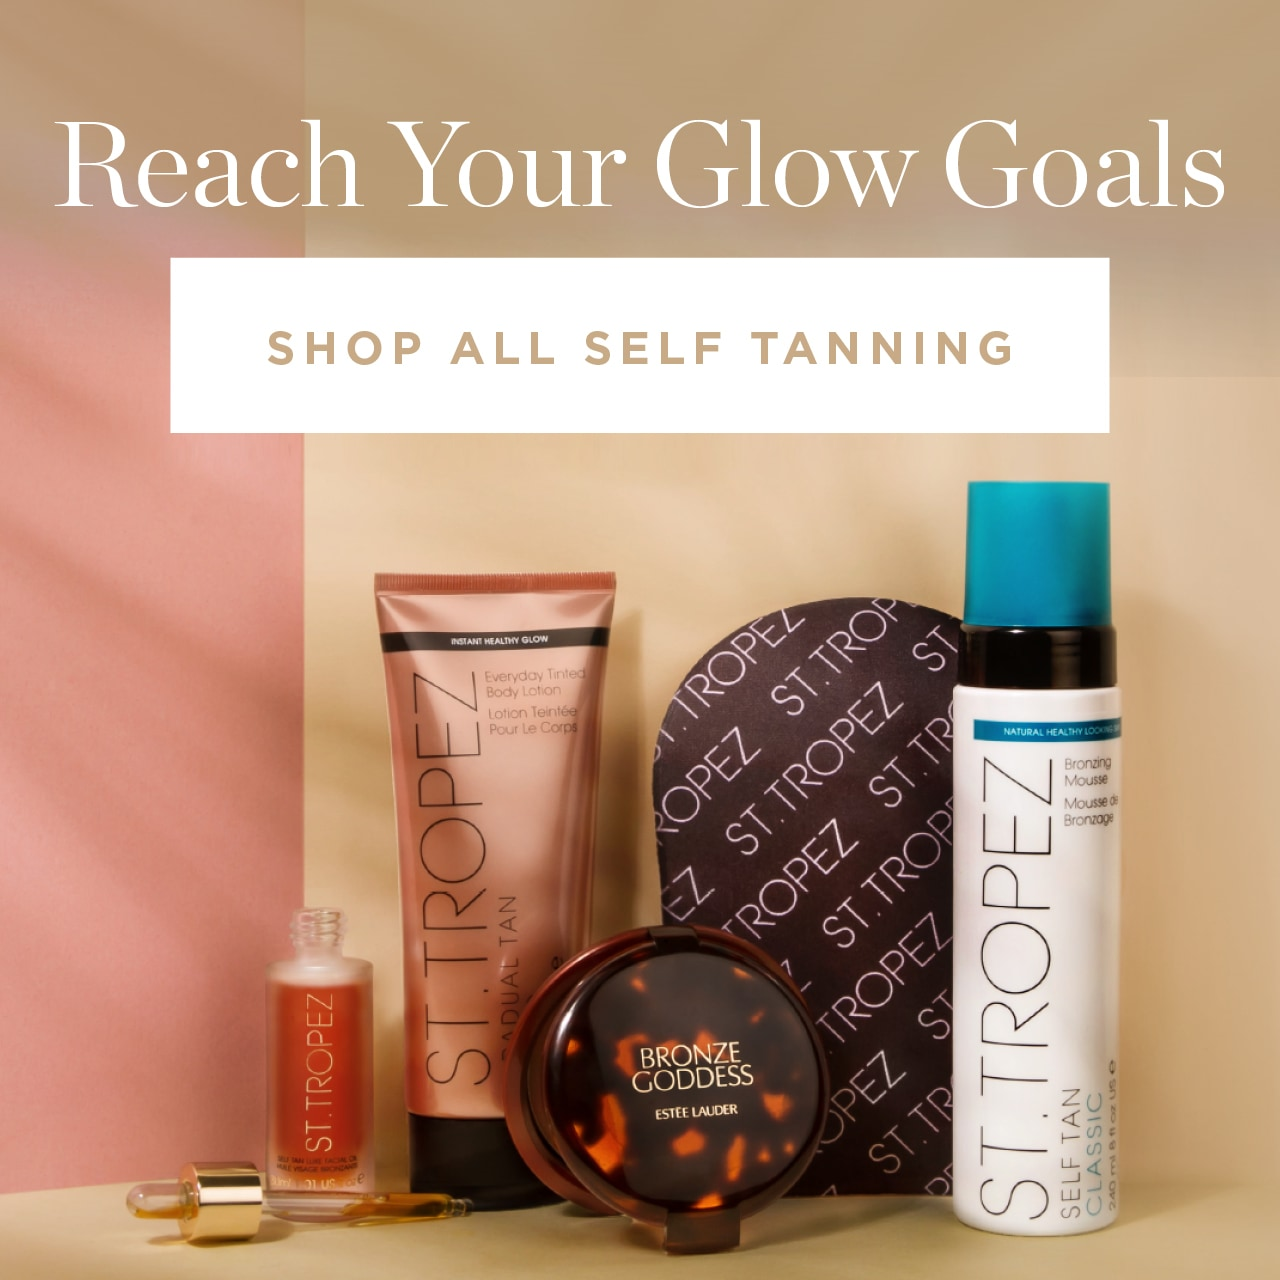 Reach your glow goals. Shop all self tanning